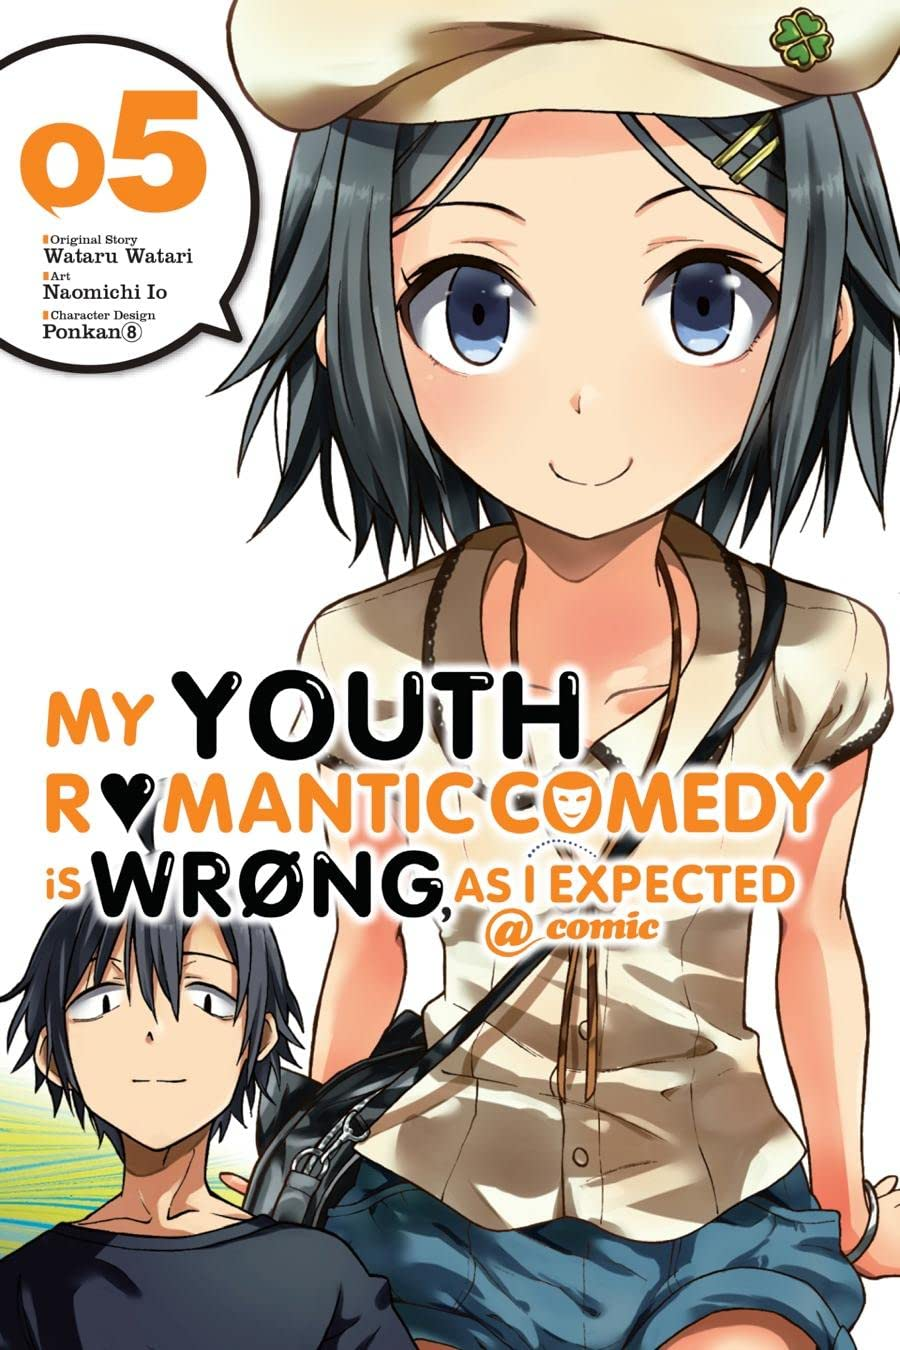 My Youth Romantic Comedy Is Wrong, As I Expected @ comic Vol. 5